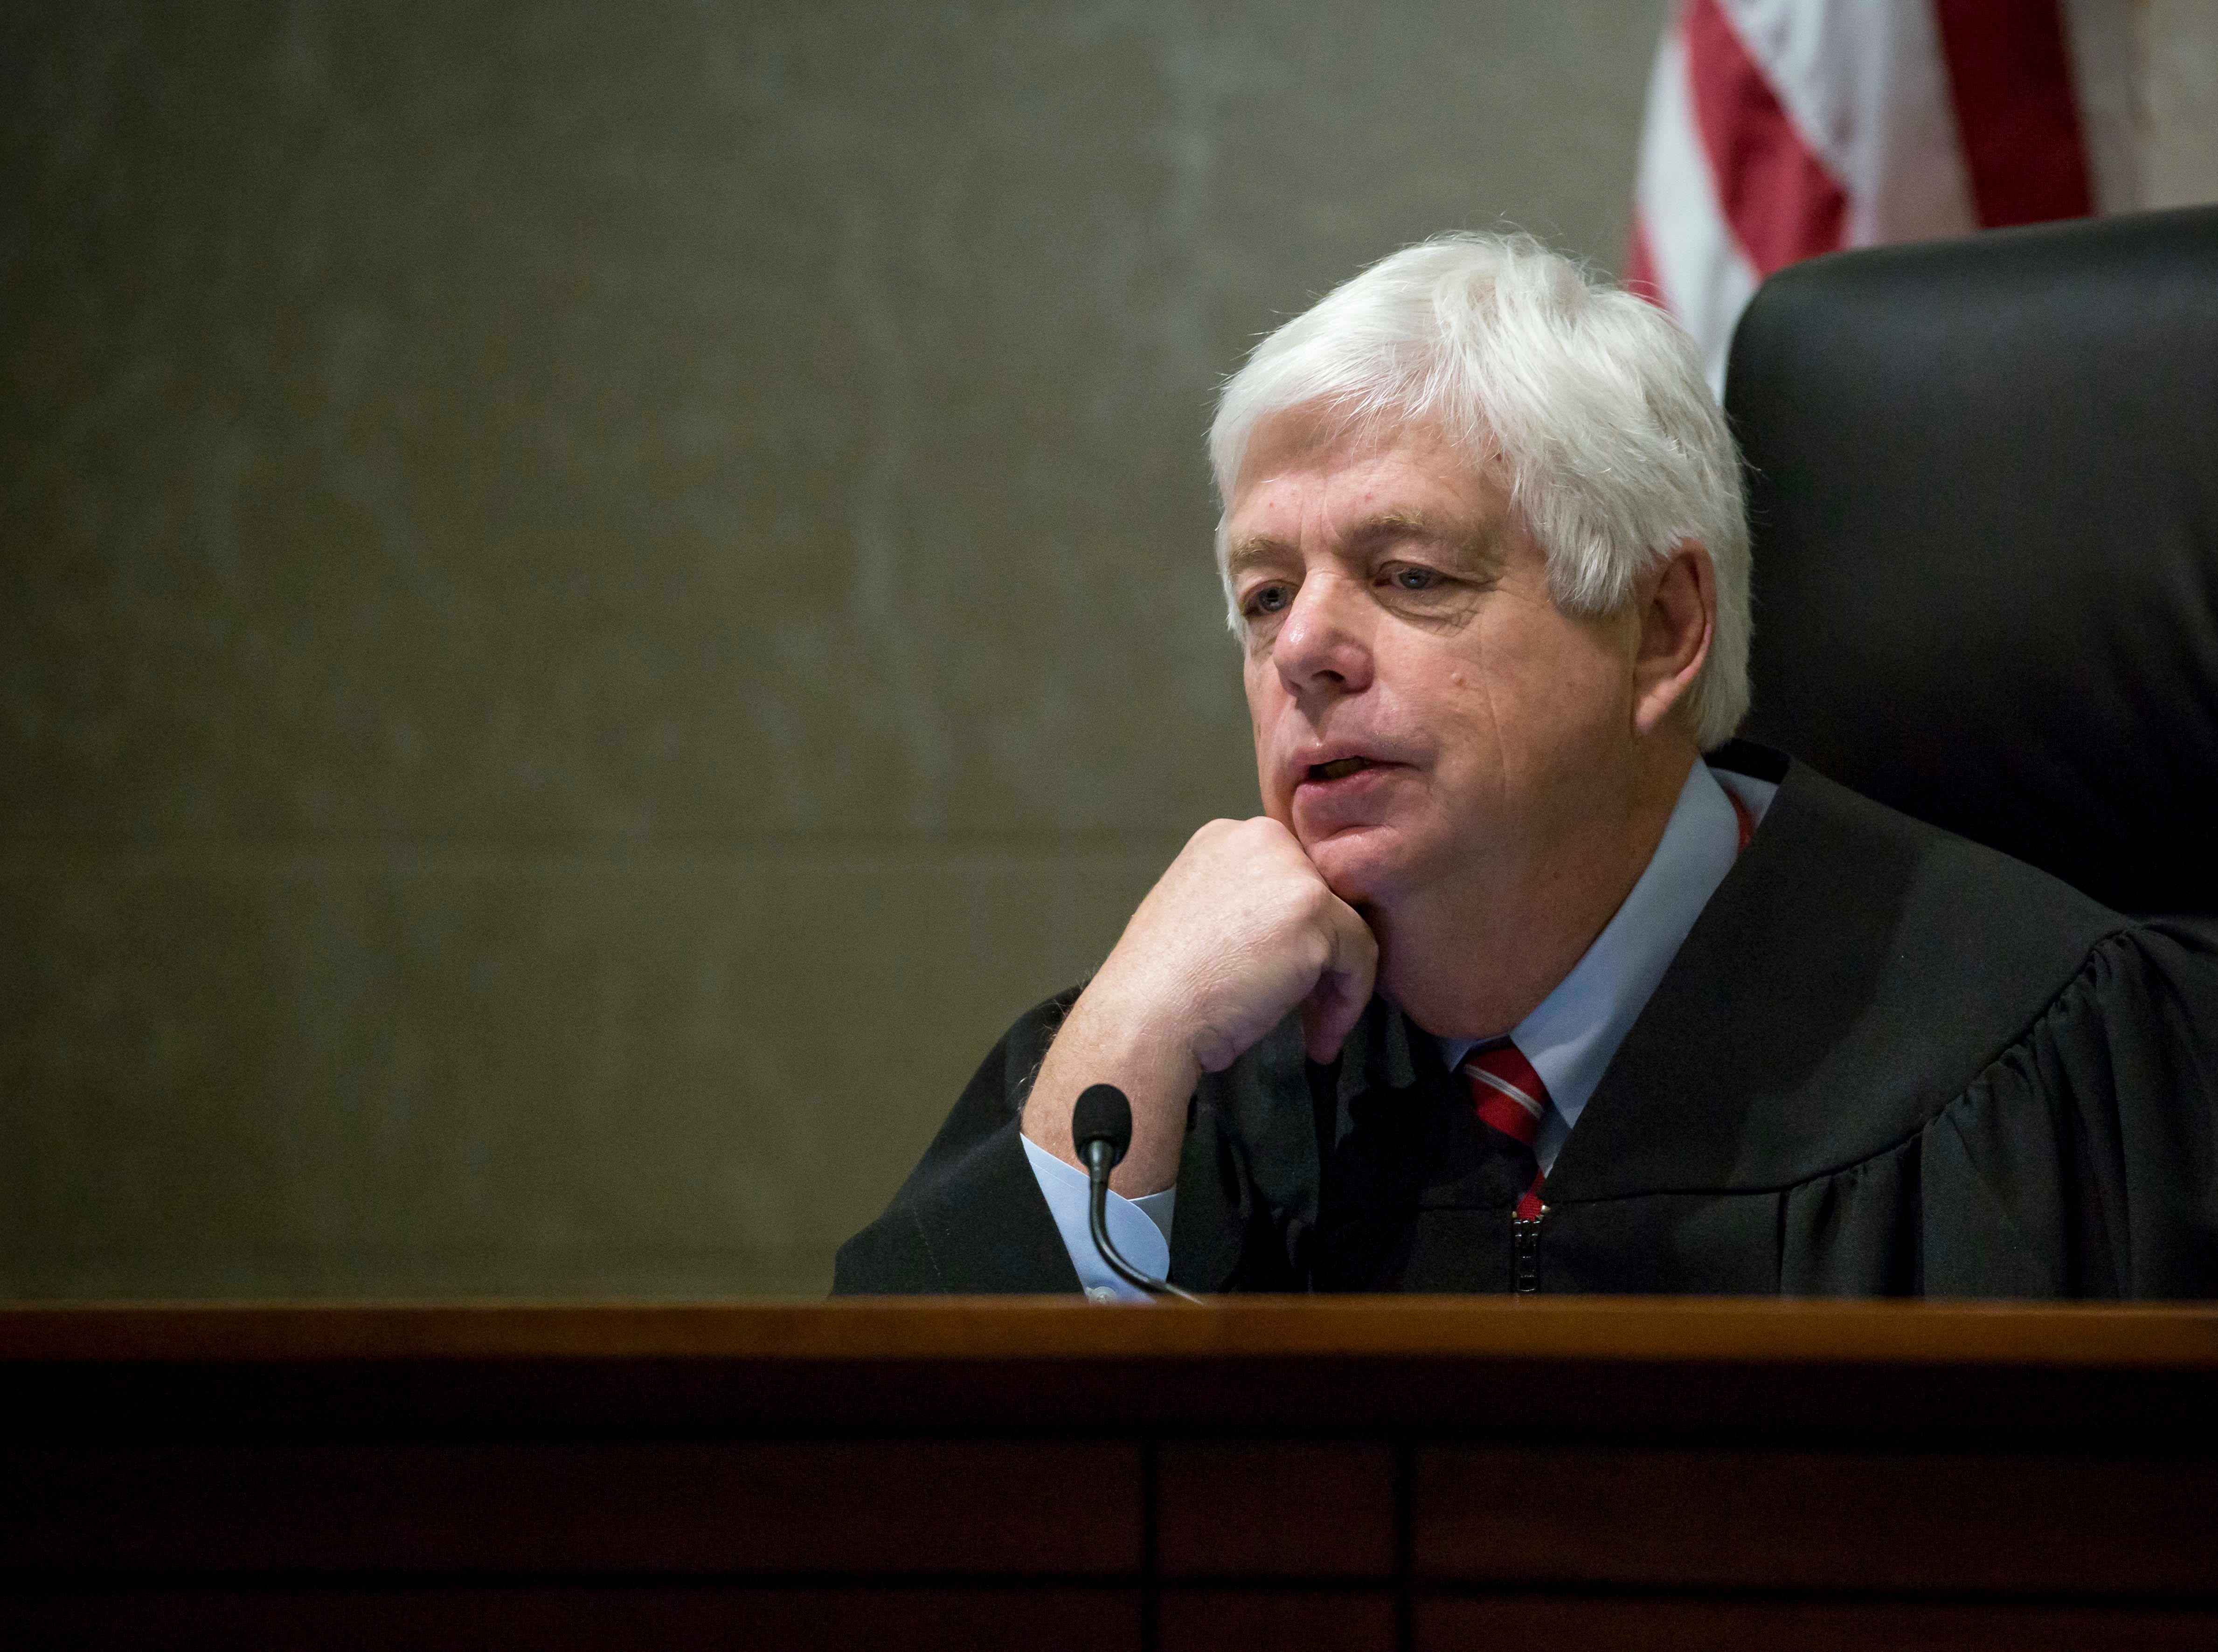 Justice David Wiggins talks to attorneys at the Iowa Supreme Court as they hear arguments in two challenges to Iowa's collective bargaining law change last year. The challenges are from AFSCME and the Iowa State Education Association at the Judicial Building Wednesday, Dec. 12, 2018, in Des Moines, Iowa.